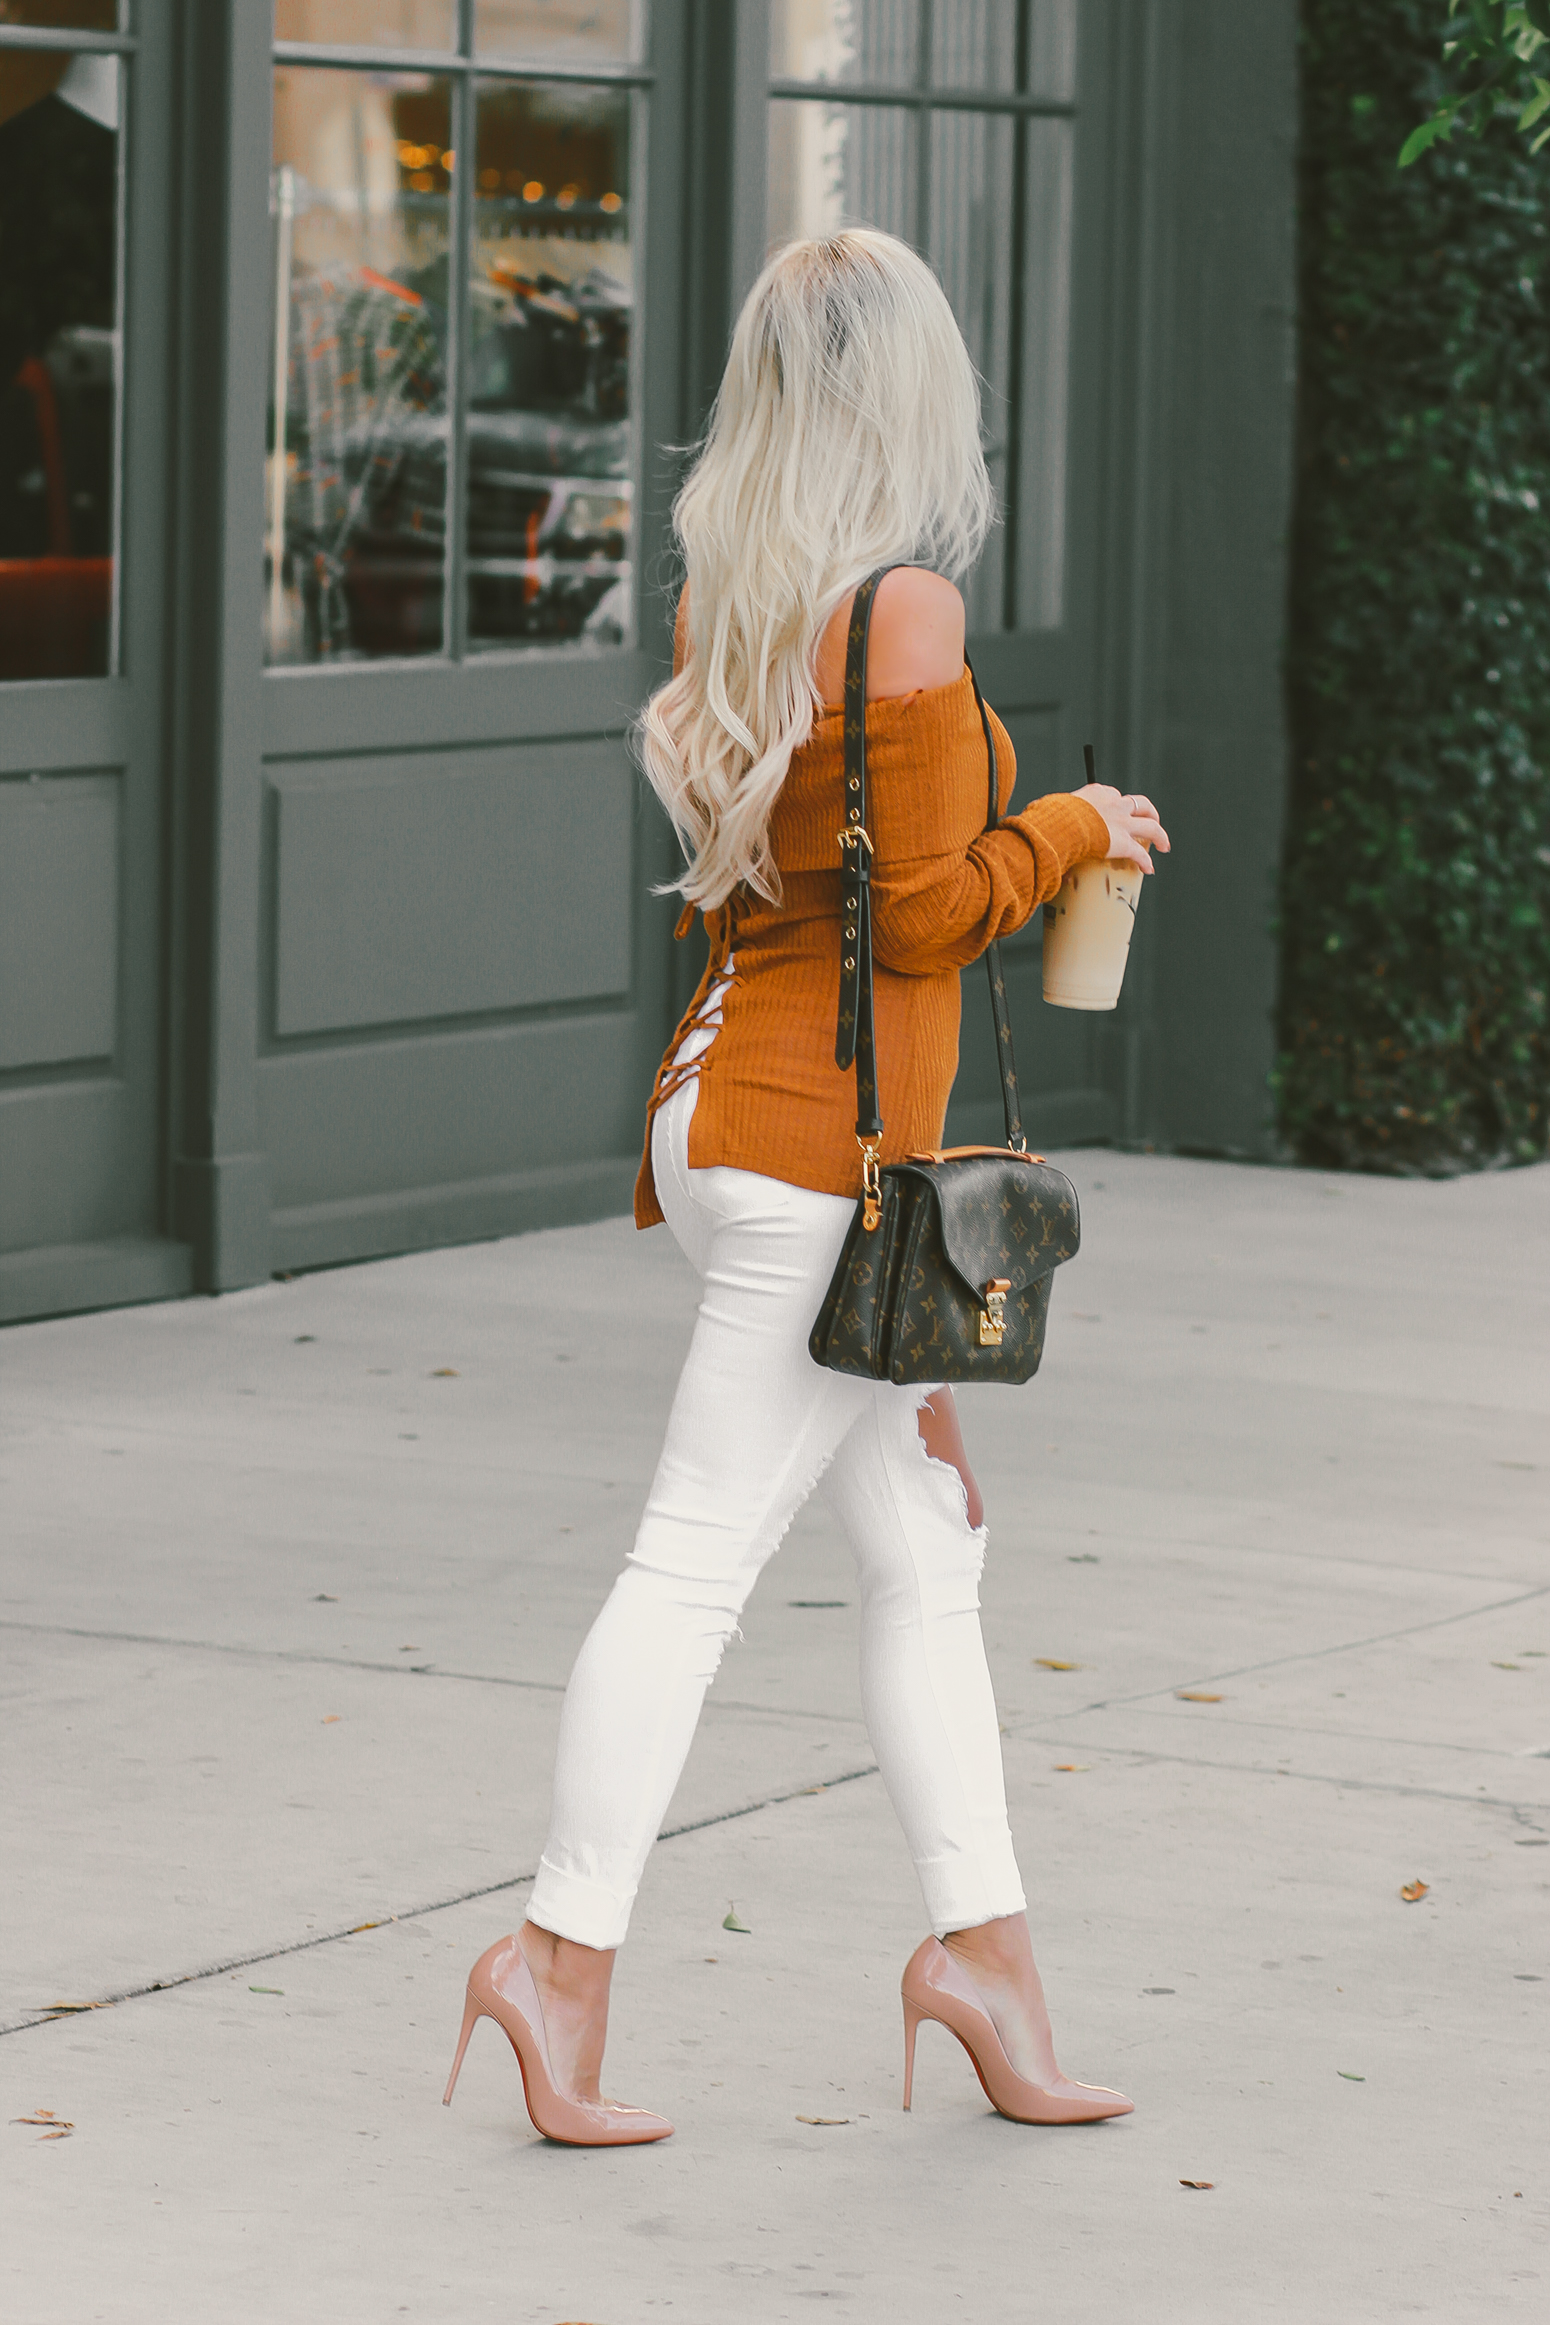 November Vibes | Off The Shoulder Sweater & White Distressed Denim @fashionnova | Blondie in the City